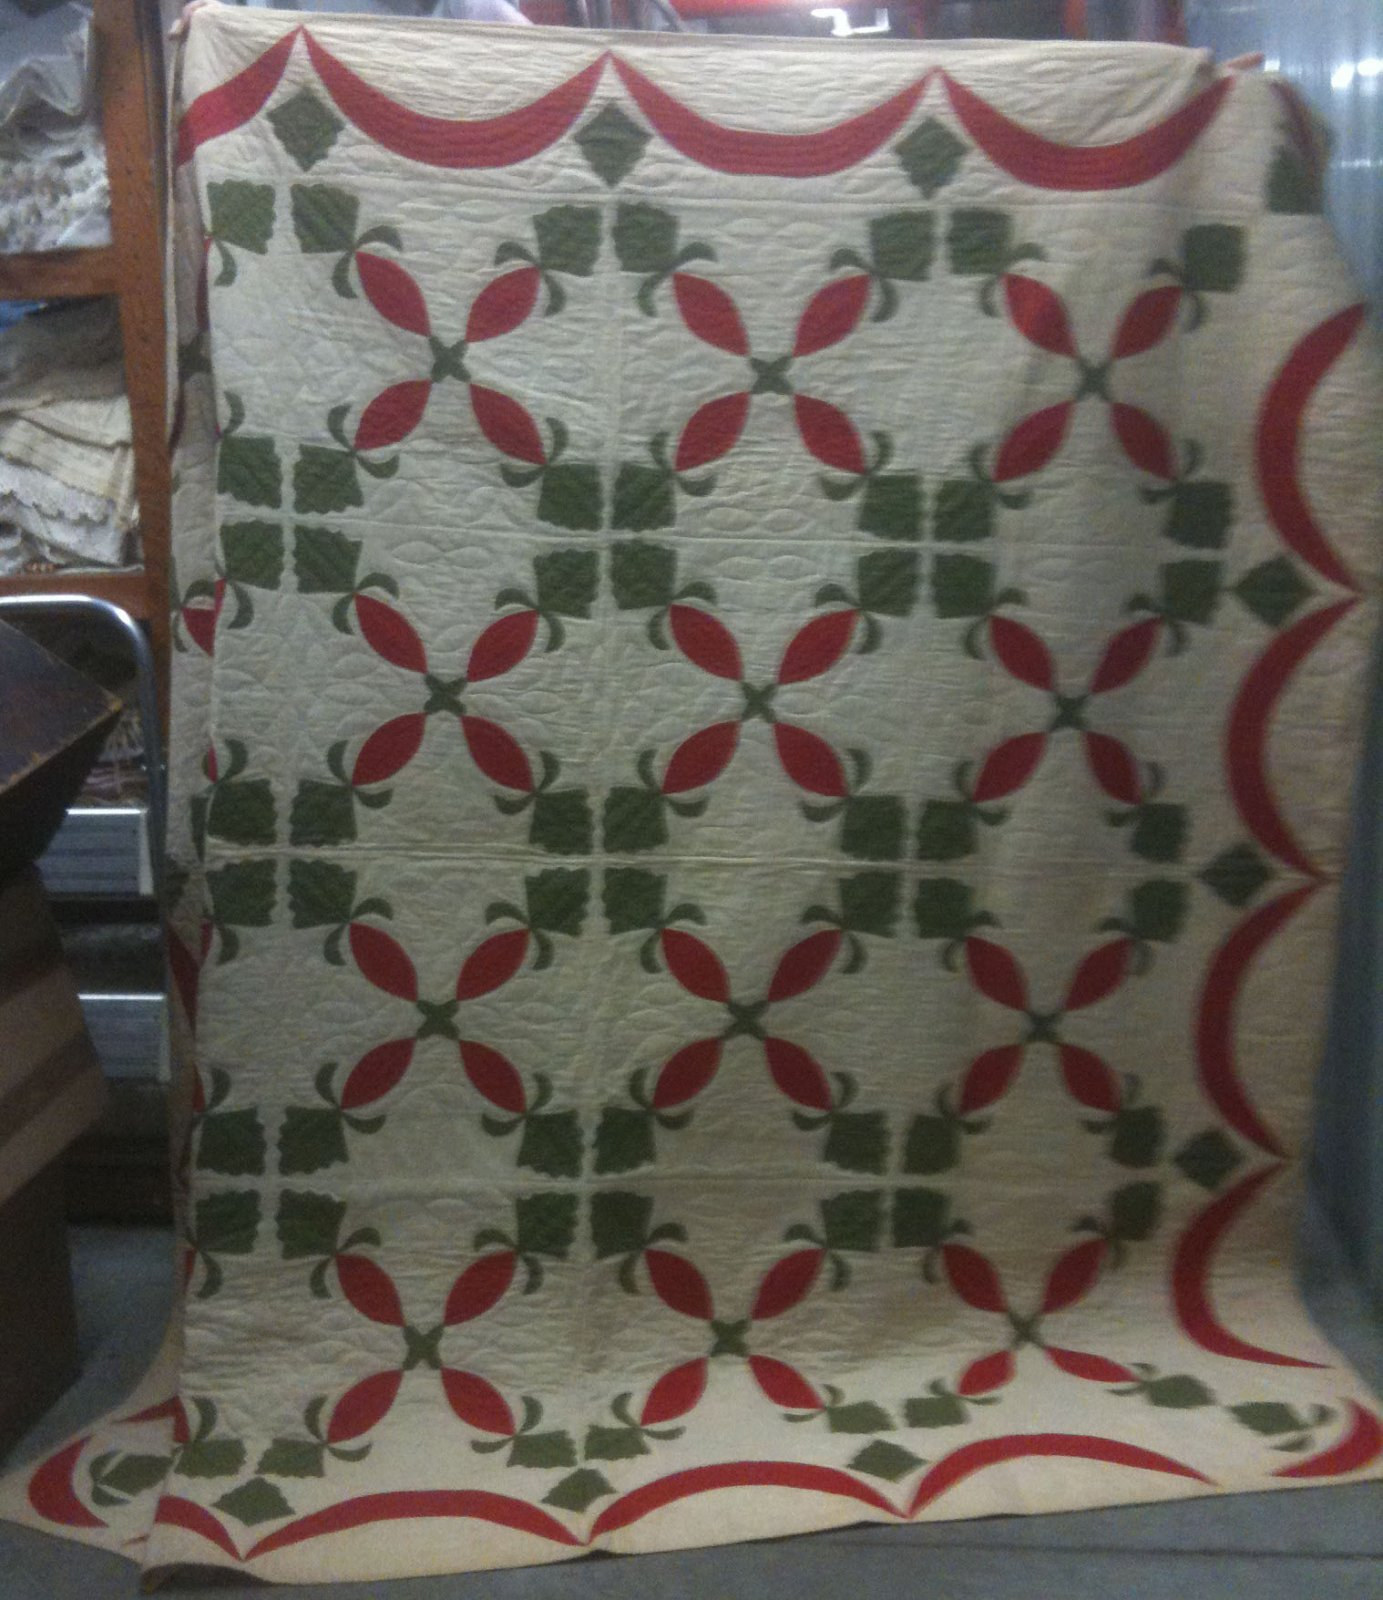 PINEAPPLES AND SWAG BORDER APPLIQUE ANTIQUE QUILT